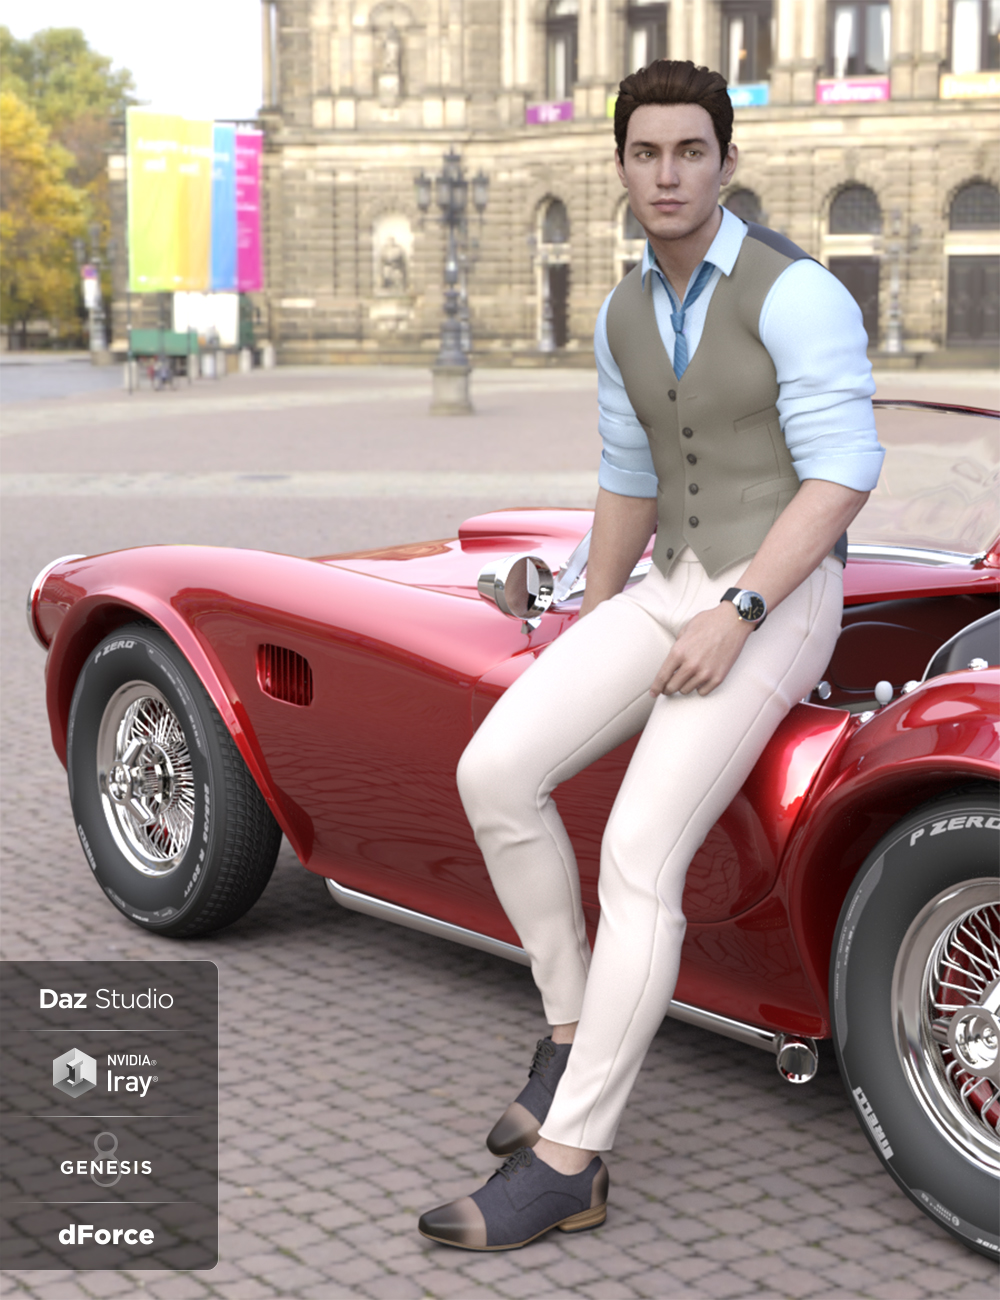 dForce Oxford Outfit for Genesis 8 Male(s) by: Blue Rabbit, 3D Models by Daz 3D